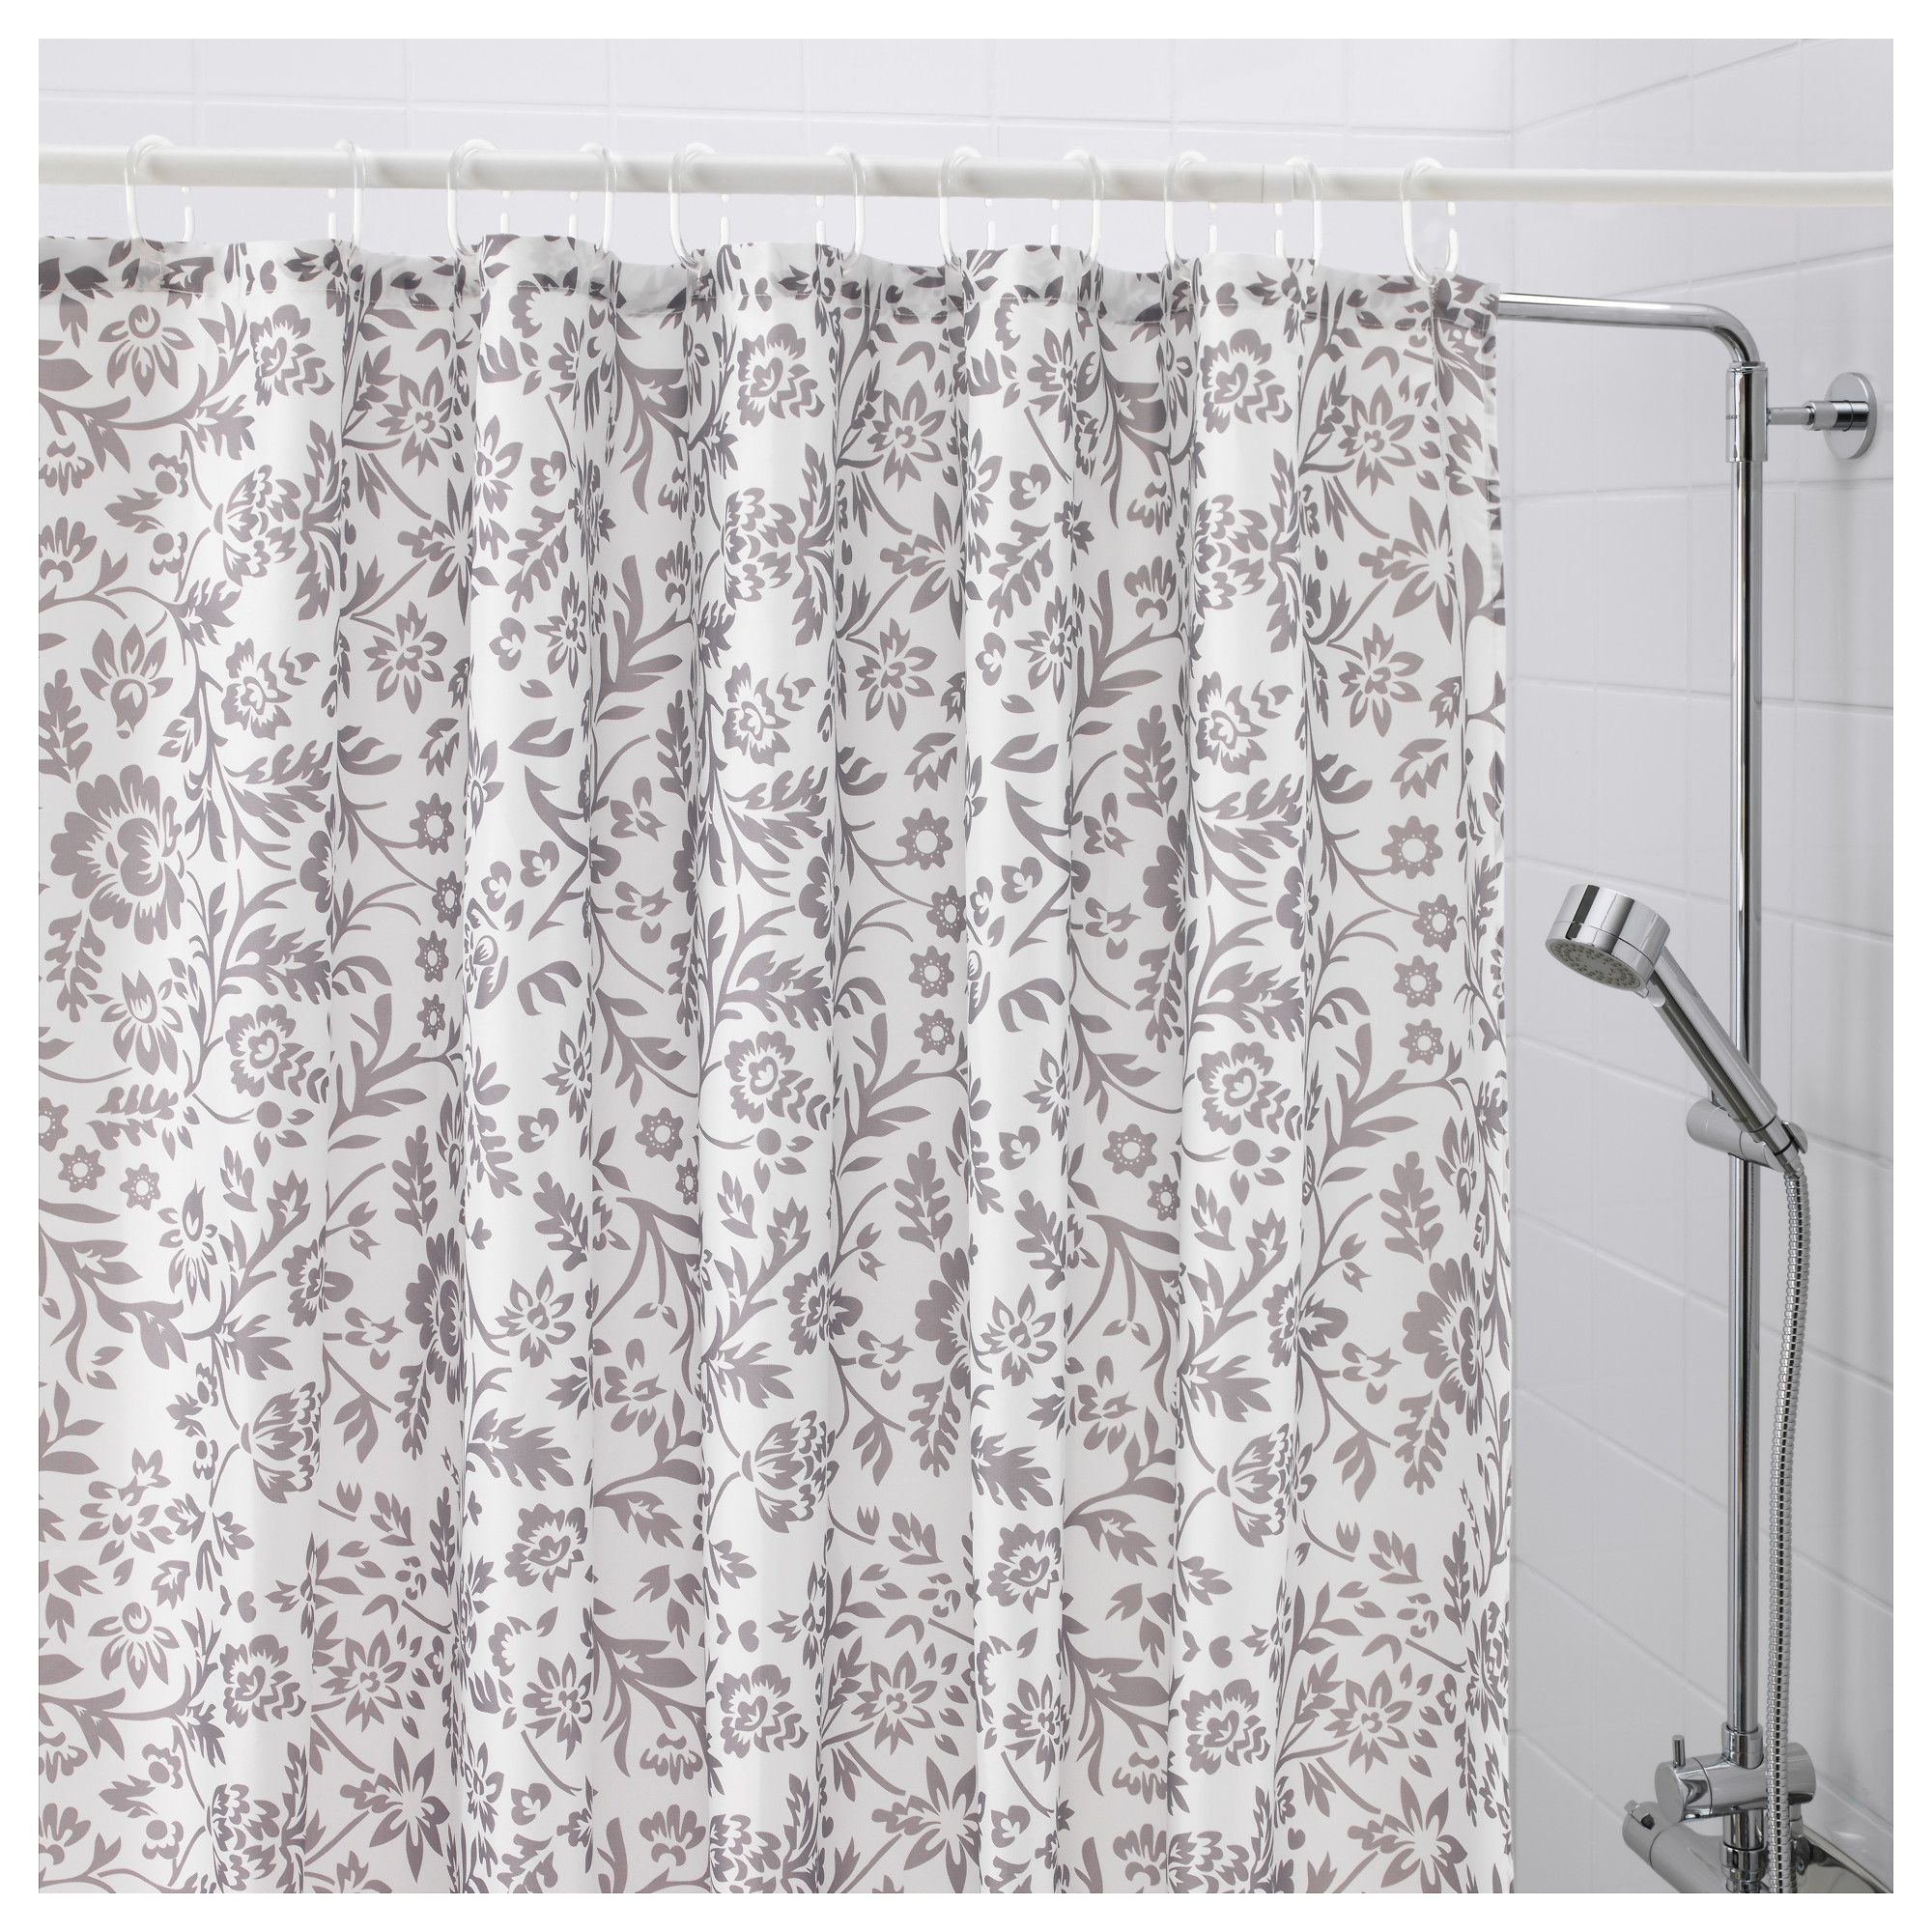 Blekviva Shower Curtain White Gray Ikea White Shower Curtain Shower Curtain Curtains